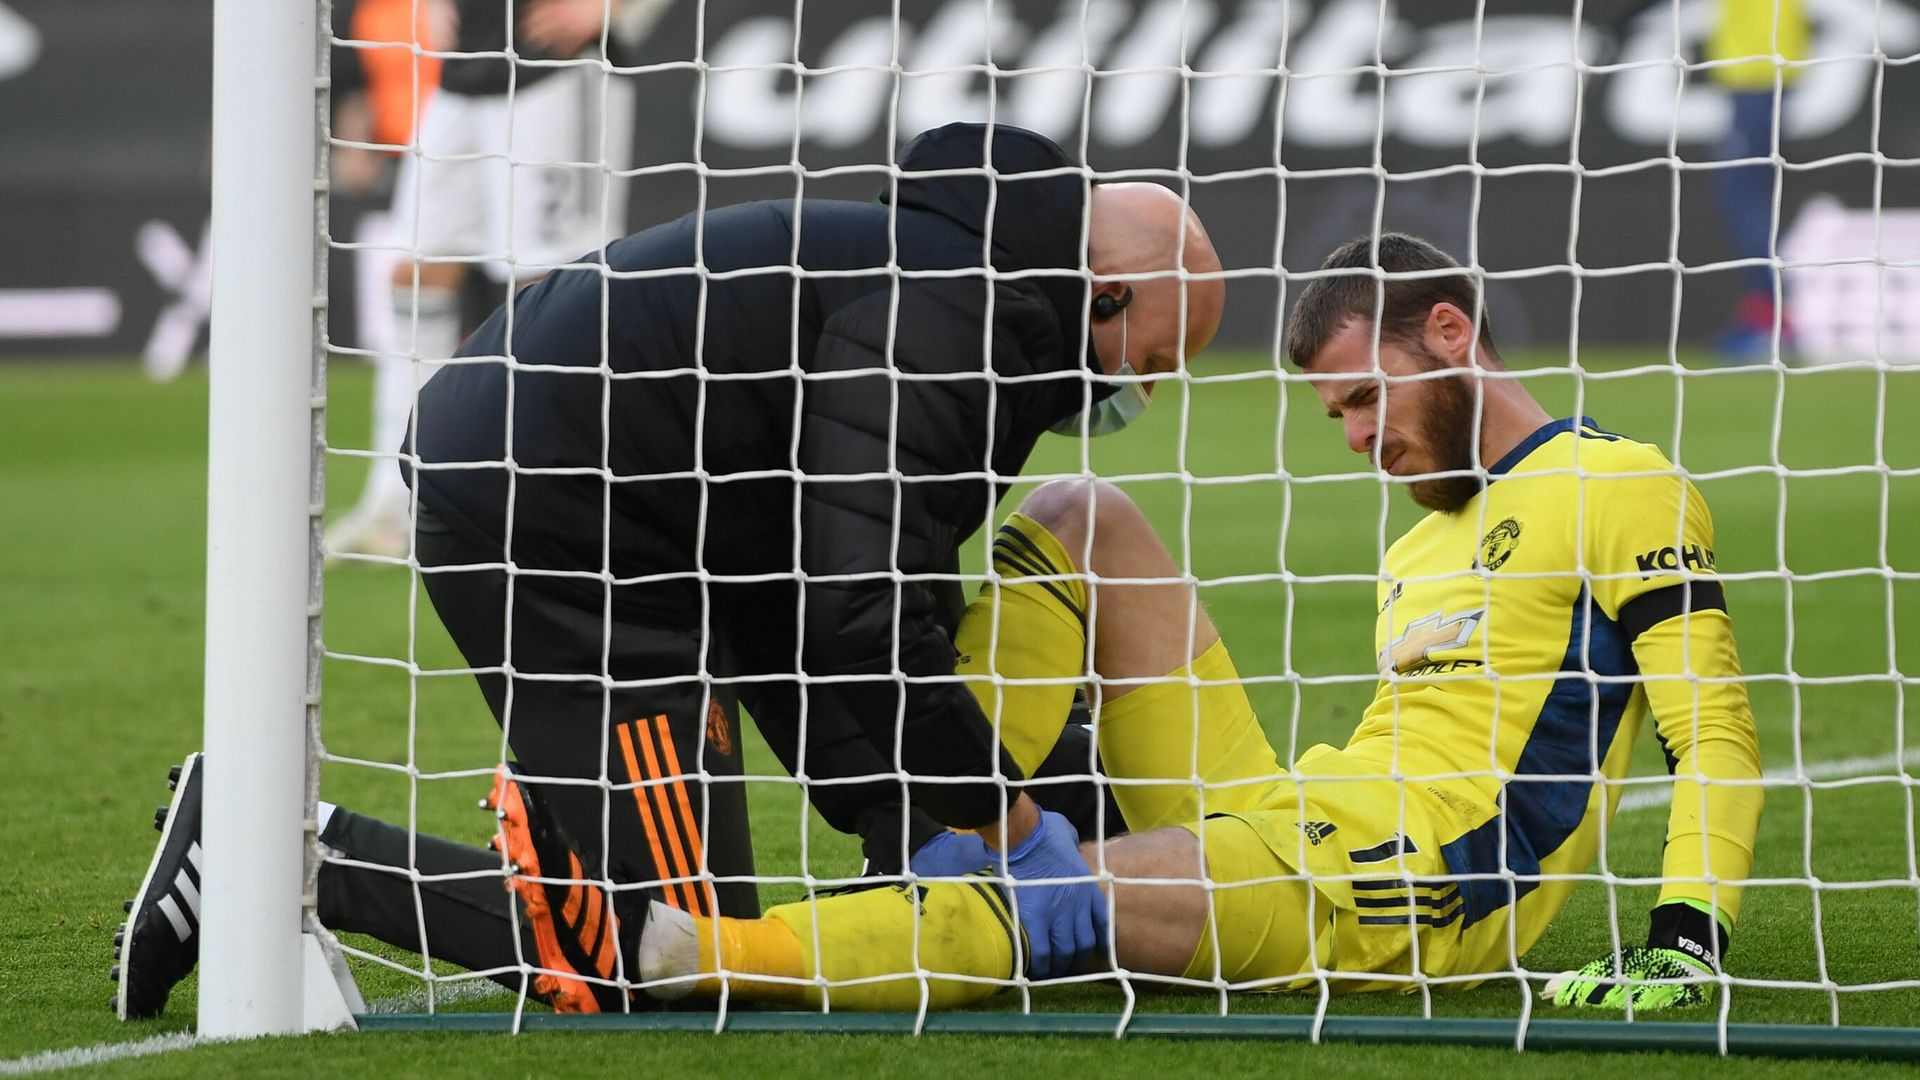 David de Gea forced off with injury; Dean Henderson makes first PL appearance for Manchester United